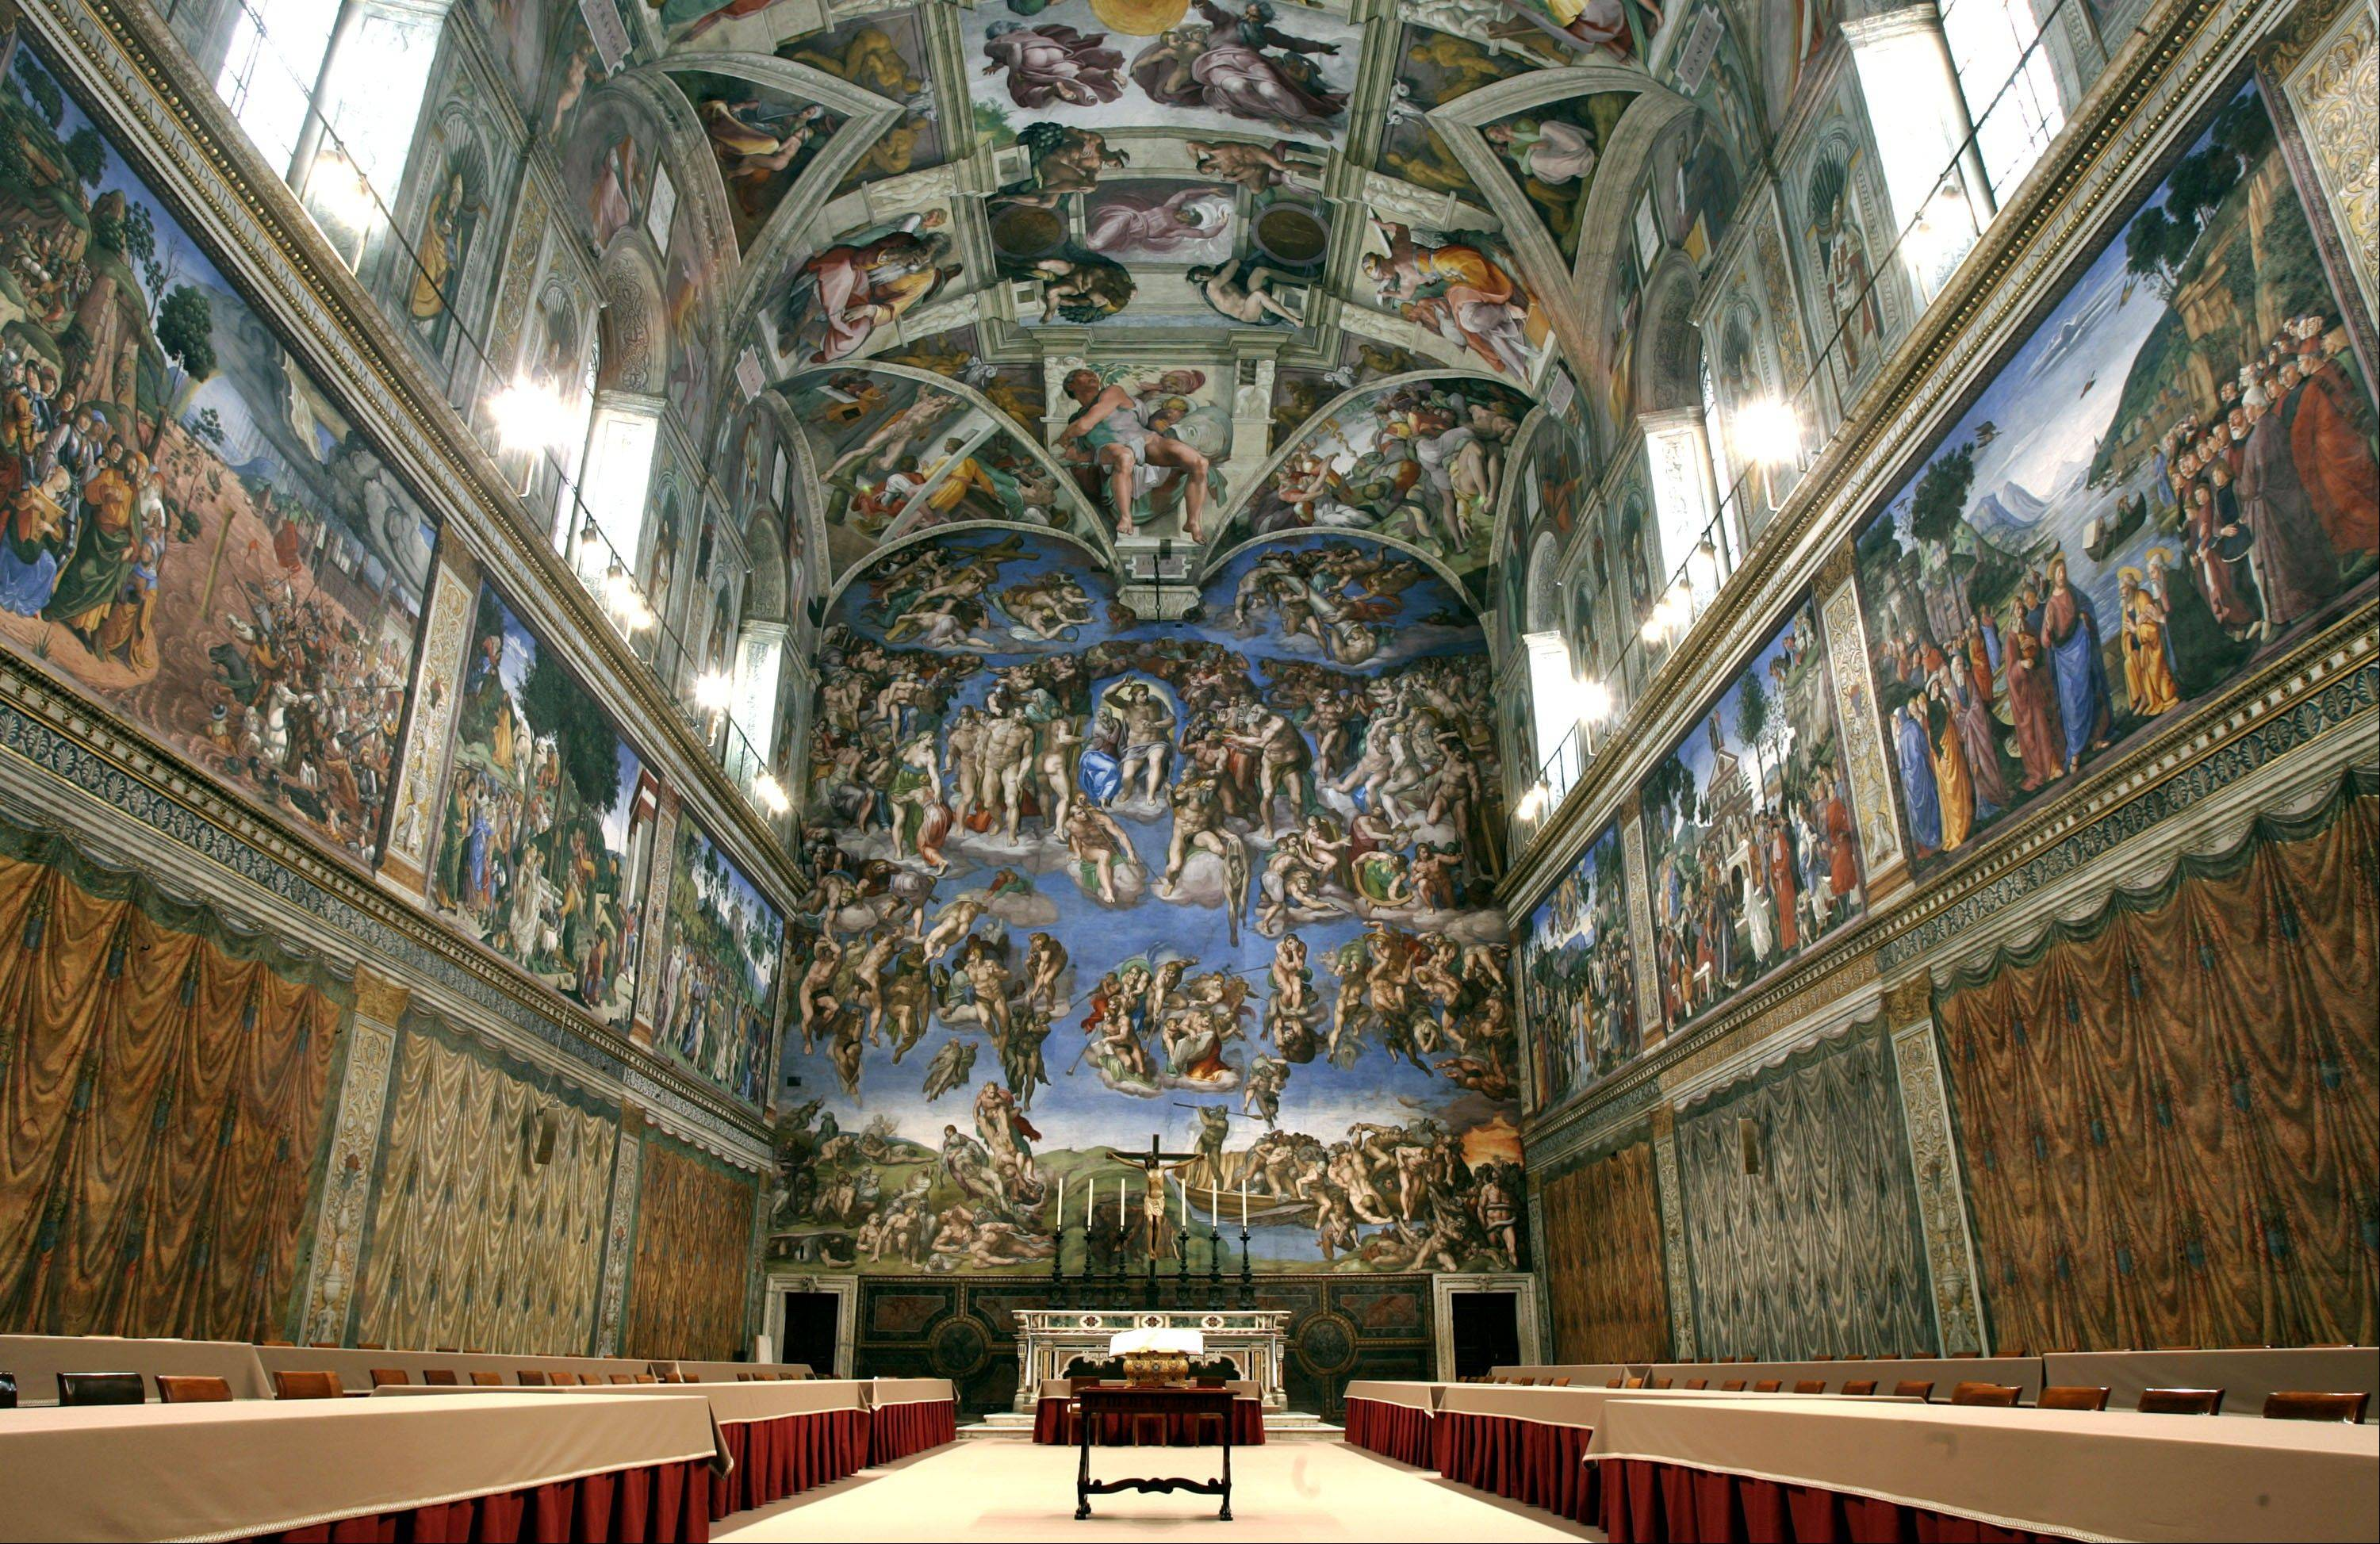 In this April 16, 2005, file photo, tables and chairs line the Sistine Chapel at the Vatican in preparation for the conclave. Five centuries after Michelangelo's ceiling frescoes were inaugurated at the Sistine Chapel, at least 10,000 people visit the site each day, raising concerns about temperature, dust and humidity affecting the famed art. But a Vatican Museums official said in the Vatican newspaper Wednesday, Oct. 31, 2012 that there are no plans to try to limit tourists' access.